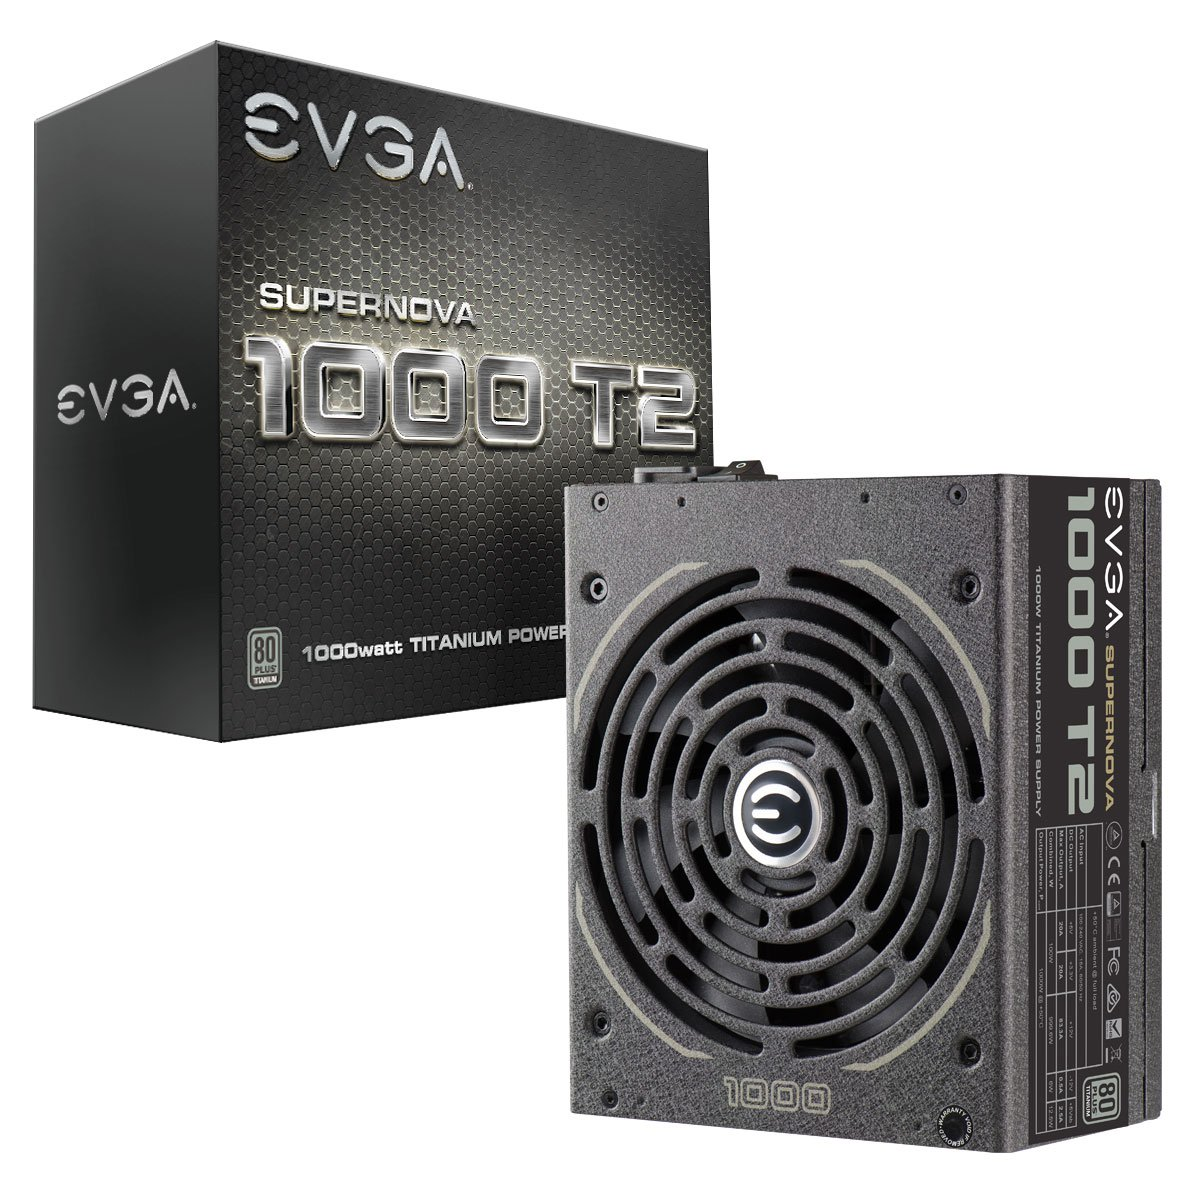 EVGA SuperNOVA 1000 T2, 80+ TITANIUM 1000W, Fully Modular, EVGA ECO Mode, 10 Year Warranty , Includes FREE Power On Self Tester, Power Supply 220-T2-1000-X1